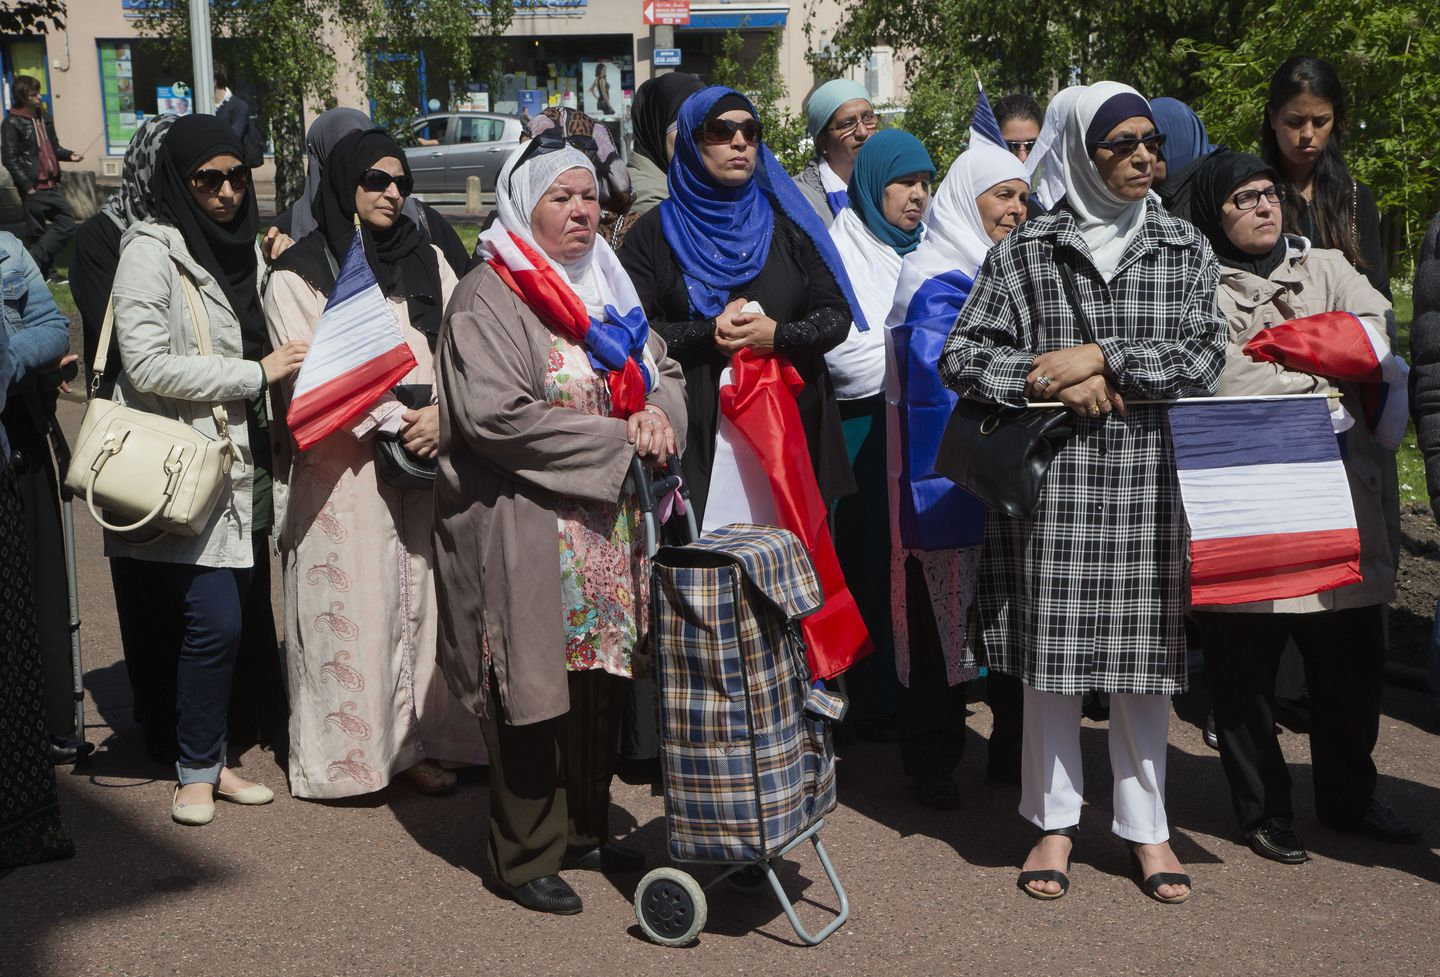 Muslim Headscarf Debate Divides France In Climate Of Hate The Boston Globe